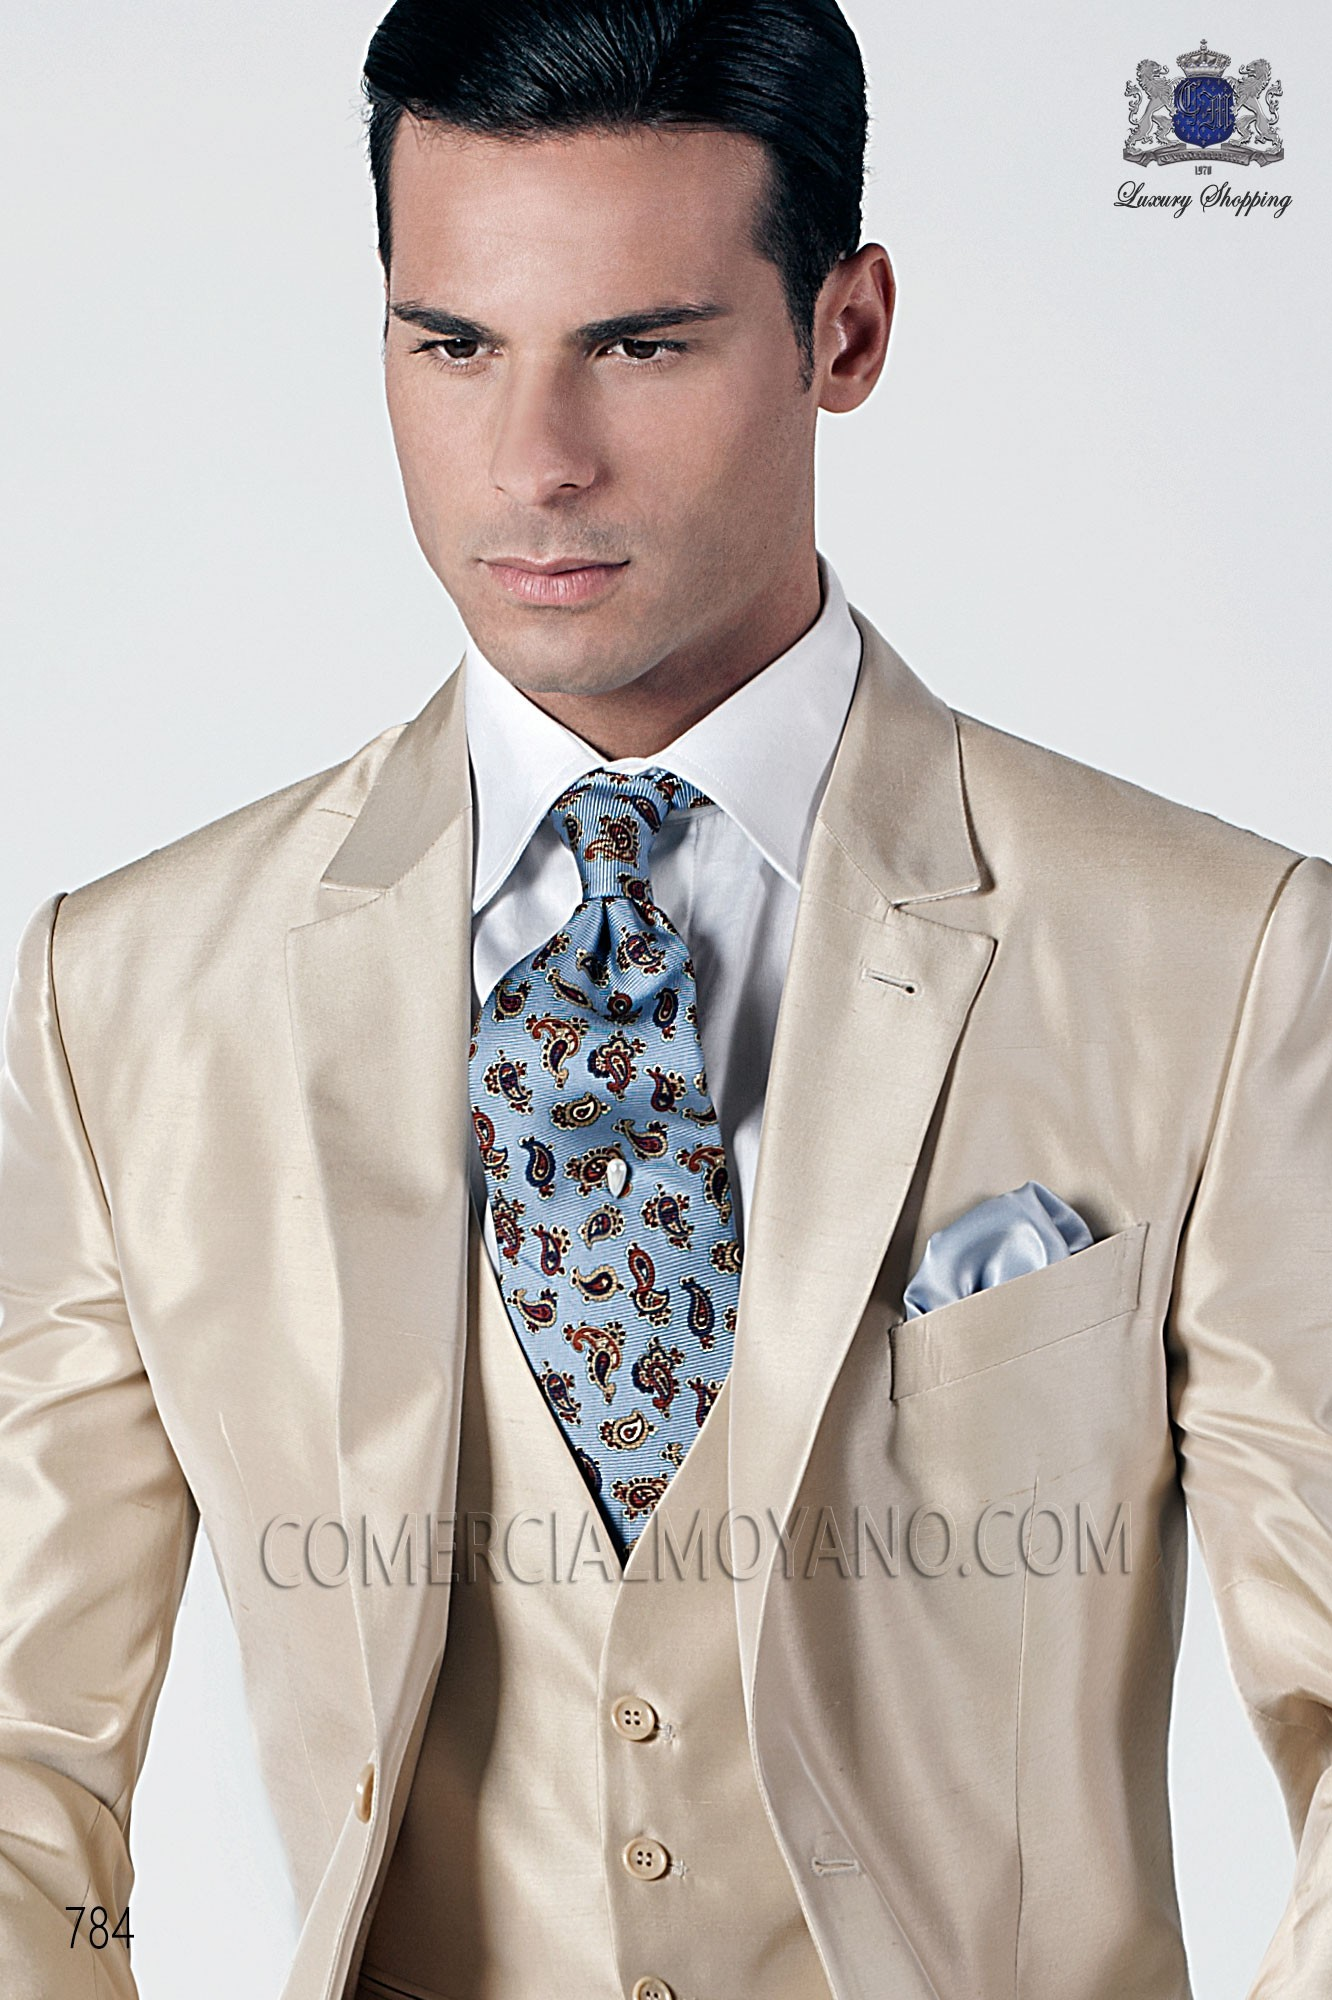 Italian hipster ivory men wedding suit, model: 784 Ottavio Nuccio Gala Hipster Collection